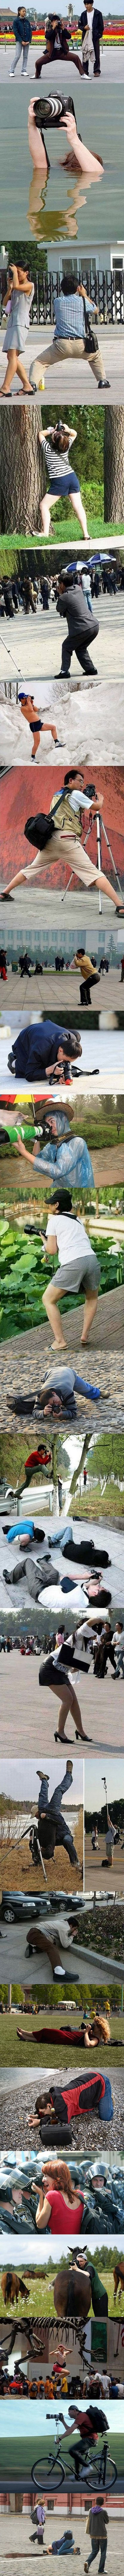 The many poses of a photographer